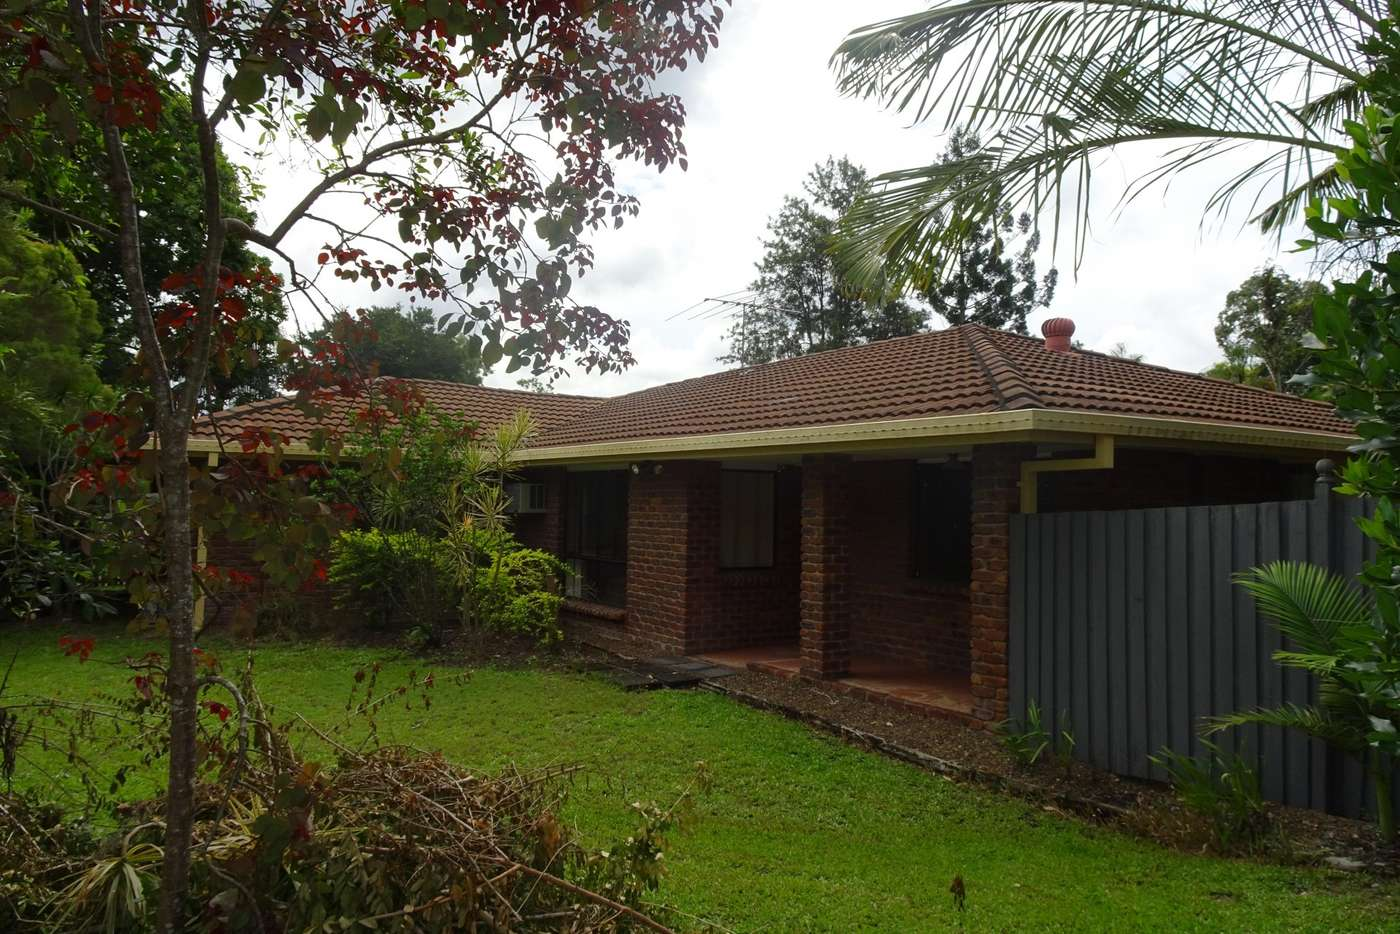 Main view of Homely house listing, 2 Okra Place, Bellbowrie QLD 4070